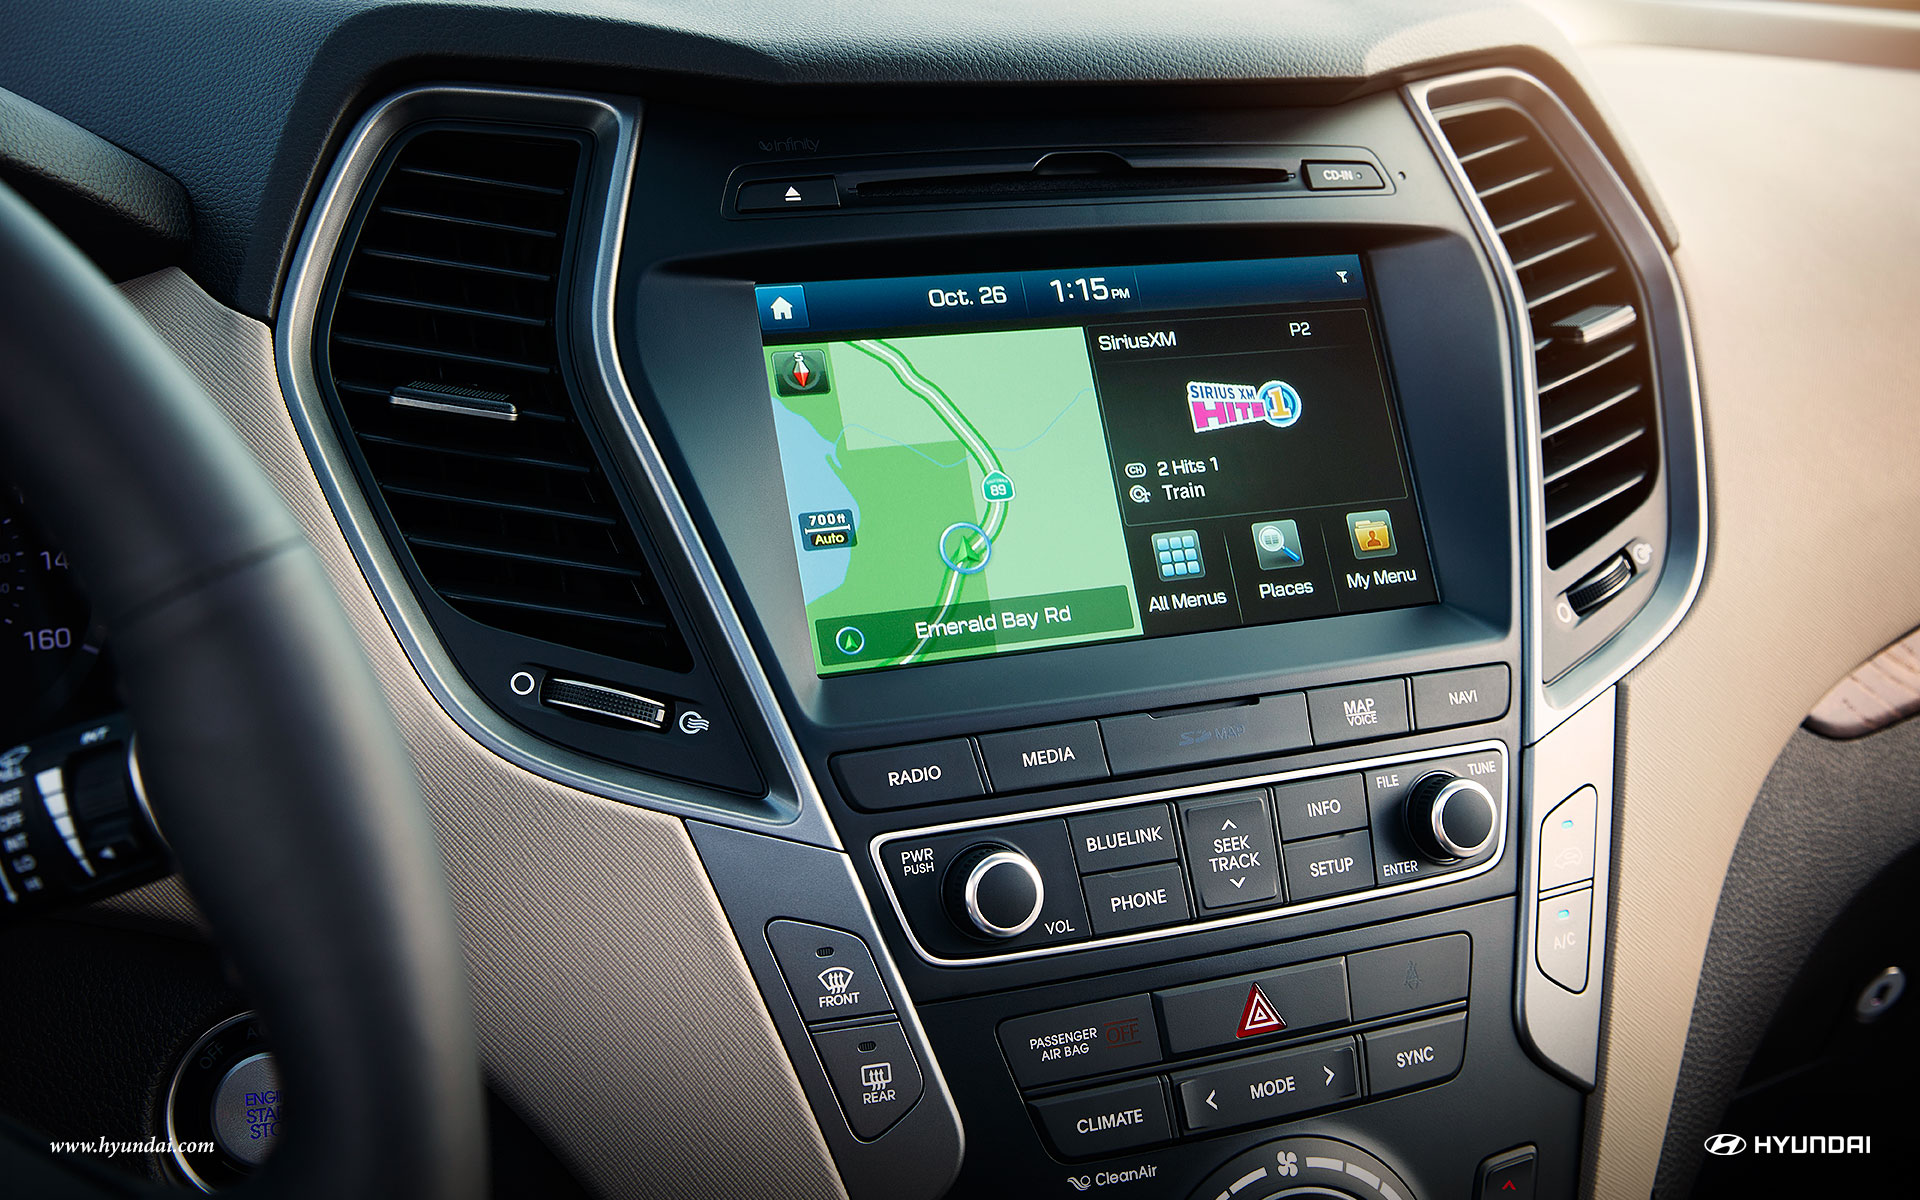 Intelligent Features in the 2018 Santa Fe